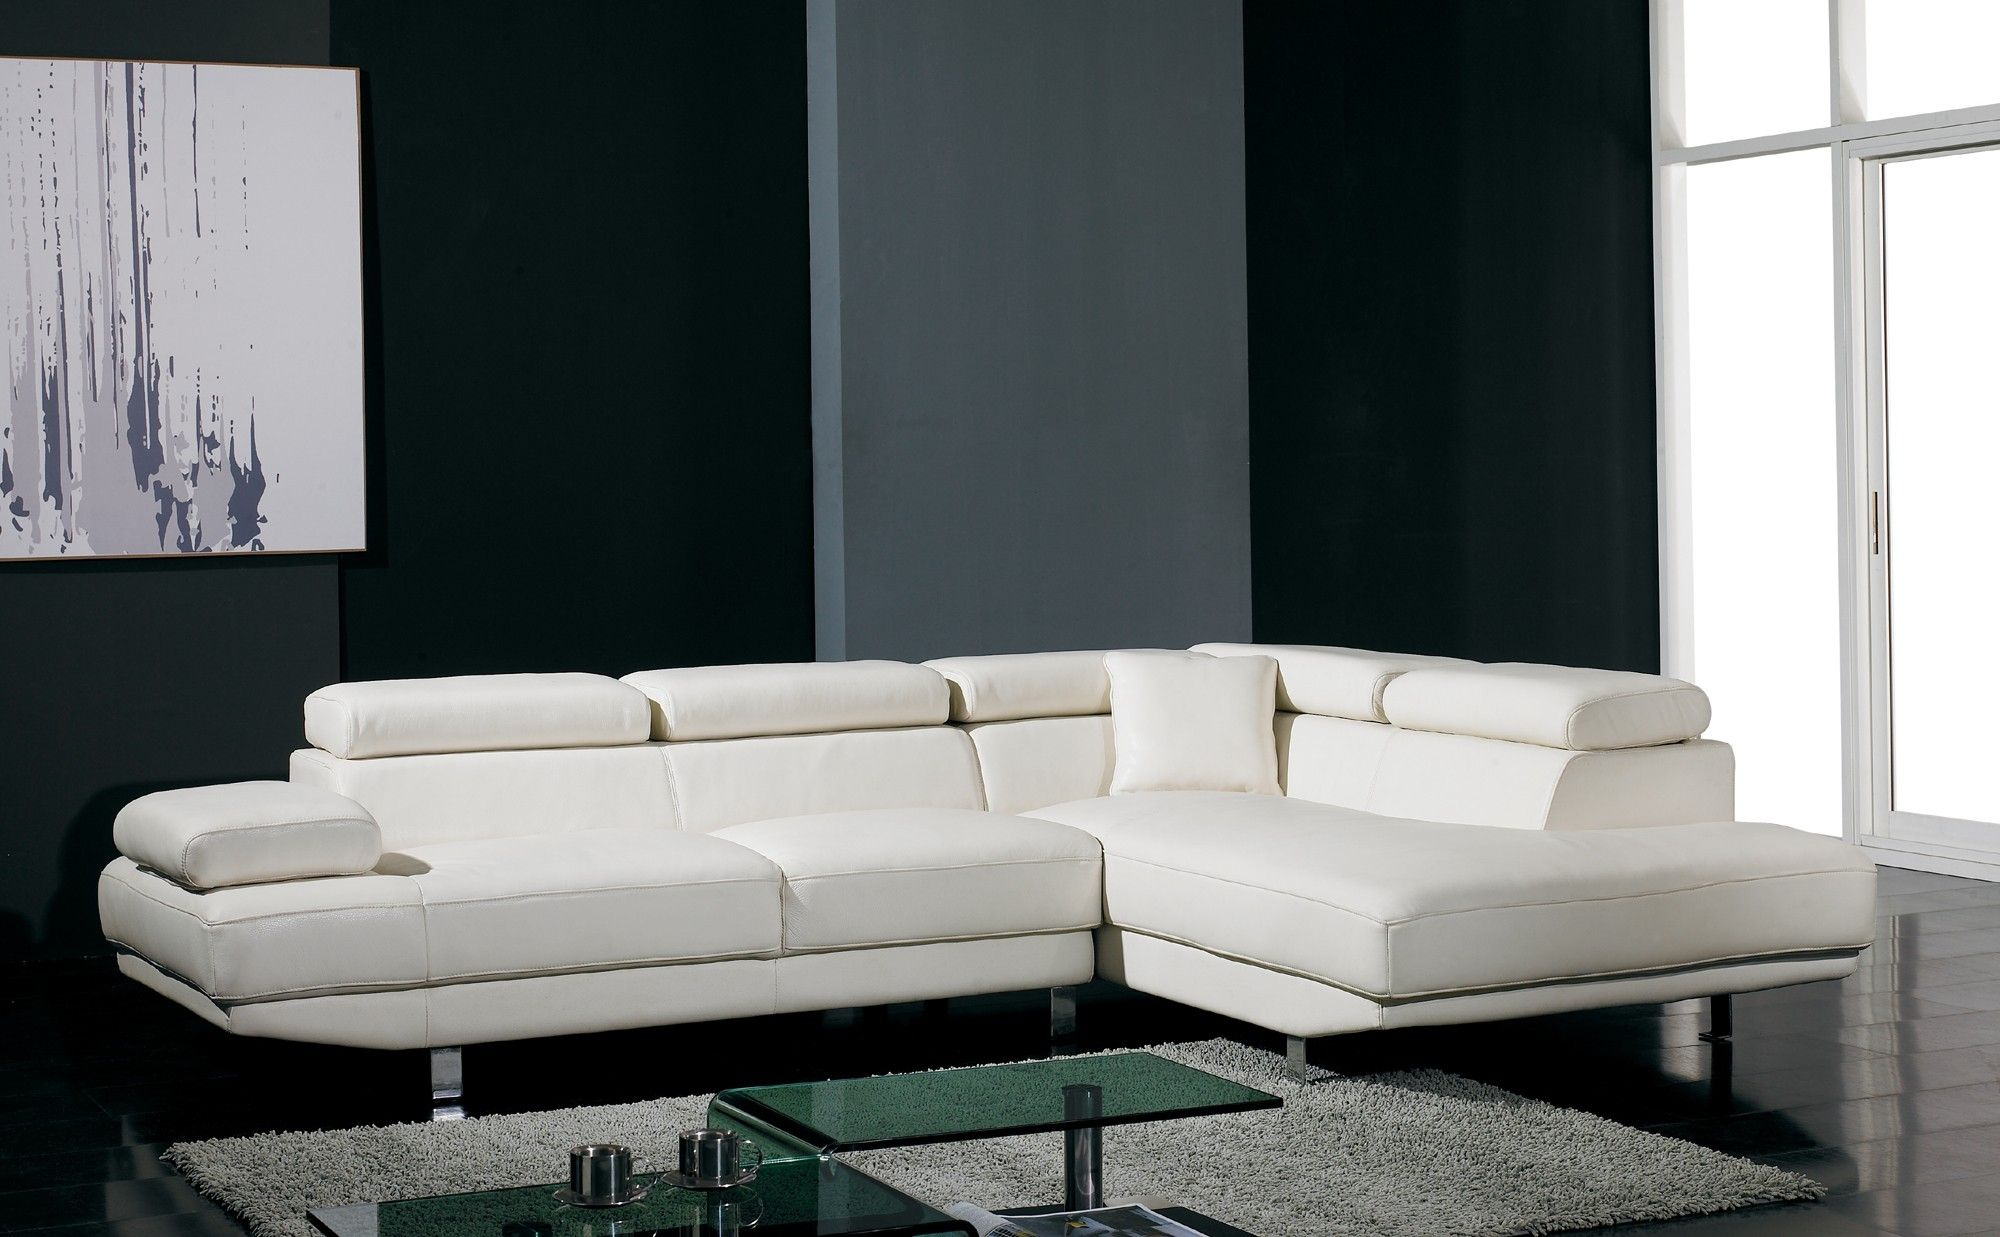 Best 20 Contemporary sectional sofas ideas on Pinterest